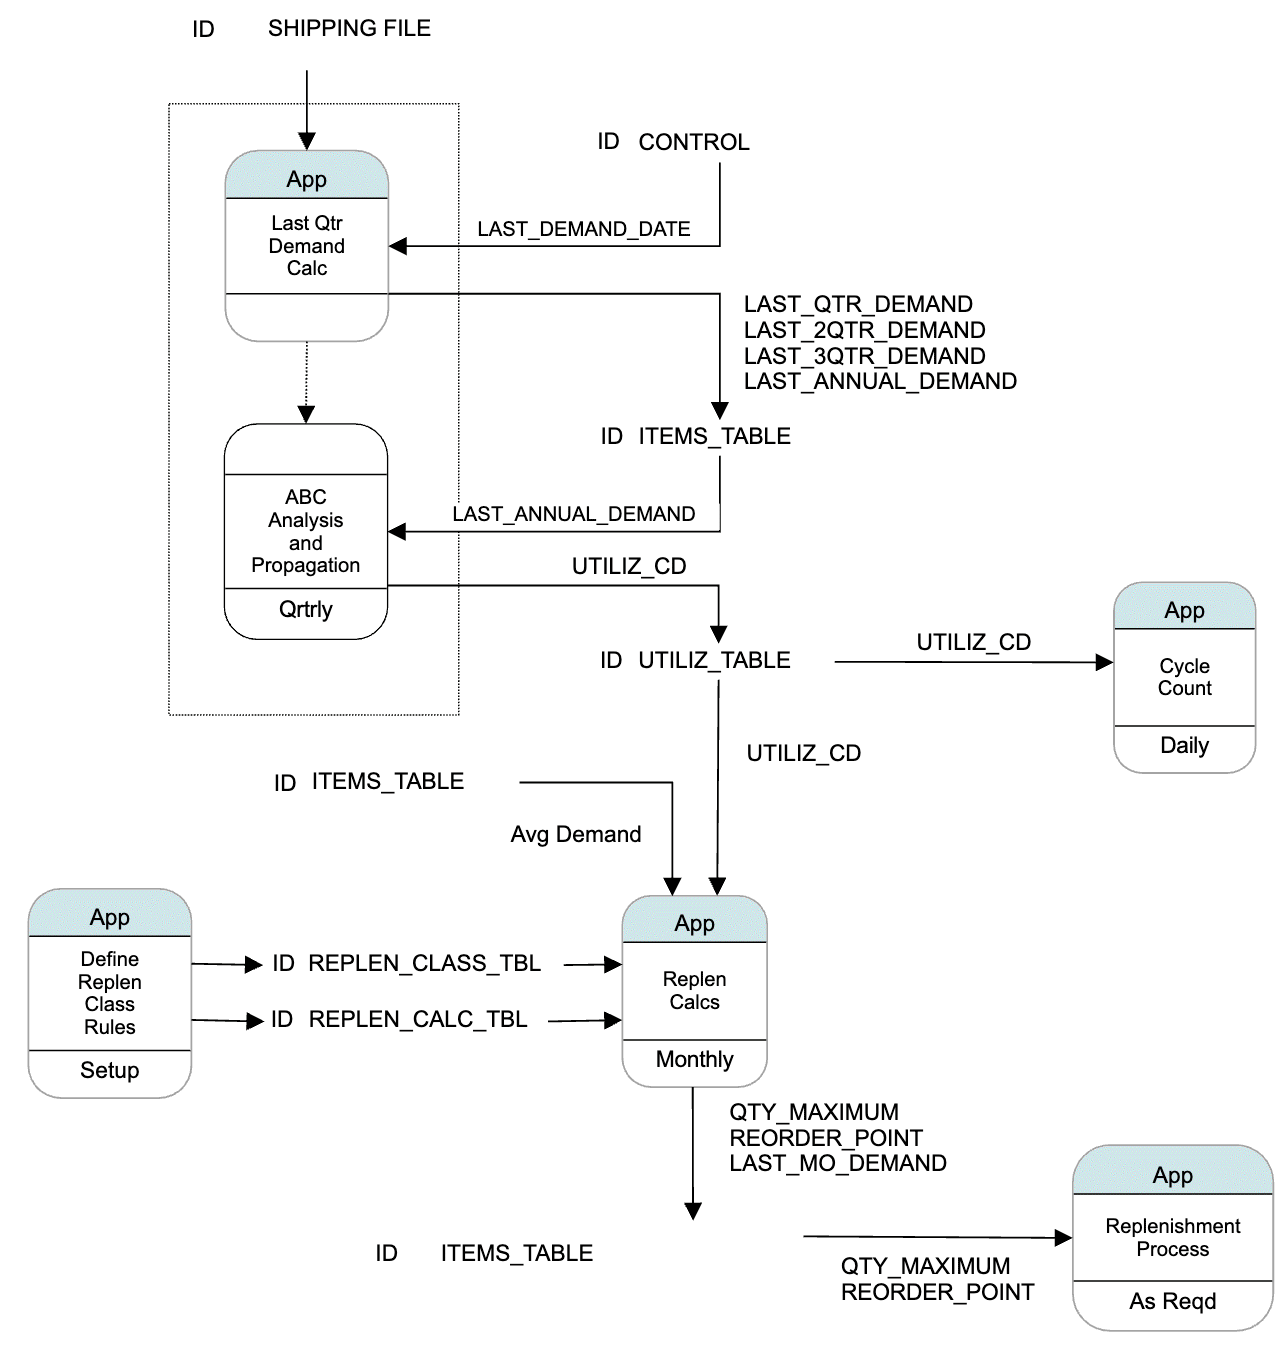 Data Flow Diagram - Free DFD Templates | Try SmartDraw Flow Diagram on systems analysis, unified modeling language, flow form, flow book, functional flow block diagram, flow theory, ishikawa diagram, management information systems, decision support system, data warehouse, flow visualization, system context diagram, flow formula, flow path, flow line, systems design, flow graph, flow state, structure chart, flow natural resources, information system, class diagram, database schema, flow icon, flow element, flow sequence, flow model, systems analyst, flow of packet netfilter, flow process, flow dot game, flow control, flow pattern, data dictionary, flow paper,